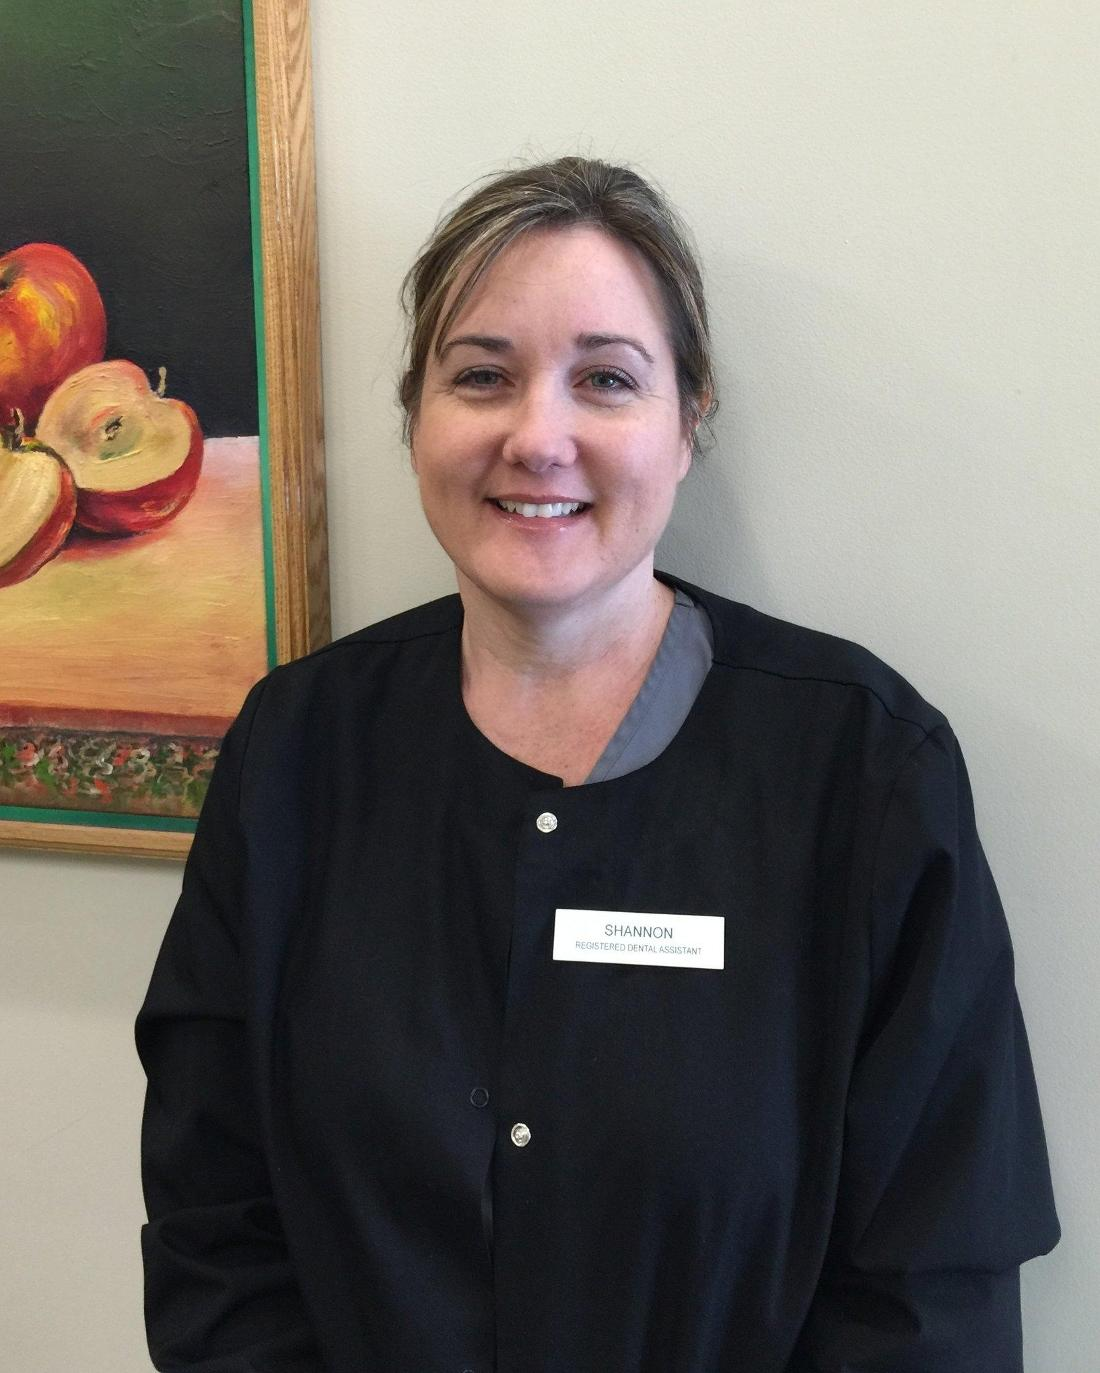 Shannon, Registered Dental Assistant at South Chico Dental Care in 95928